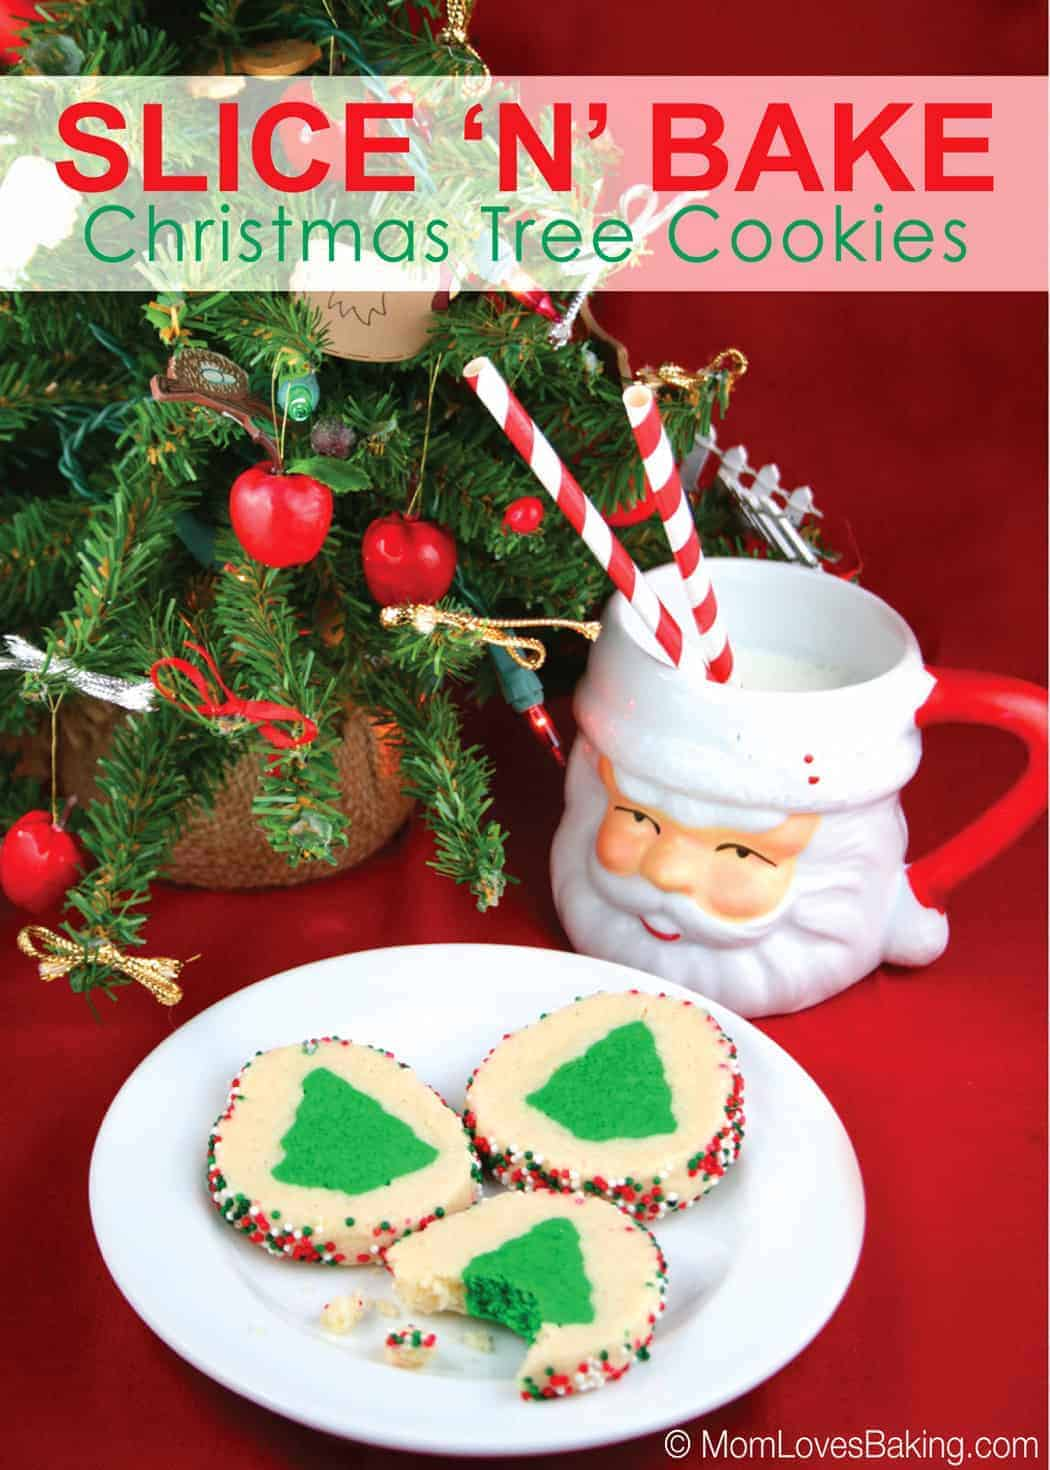 Slice-N-Bake Christmas Tree Cookies